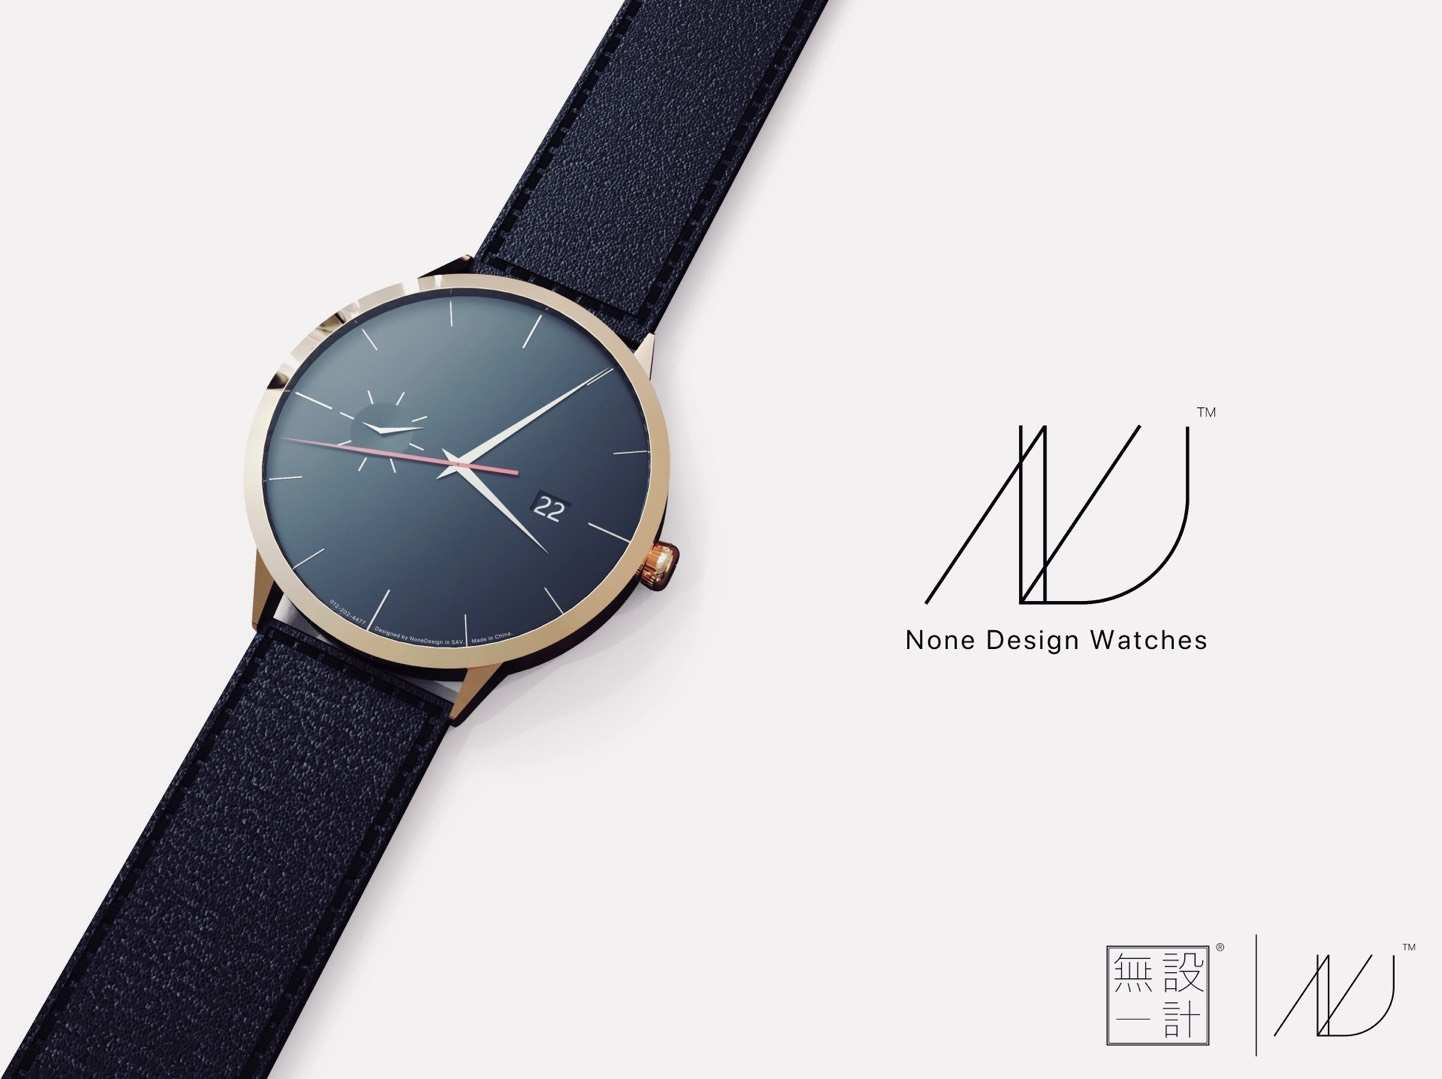 - NDW Origin WatchDesigned by: Joe TianAvailable Date: July 2019